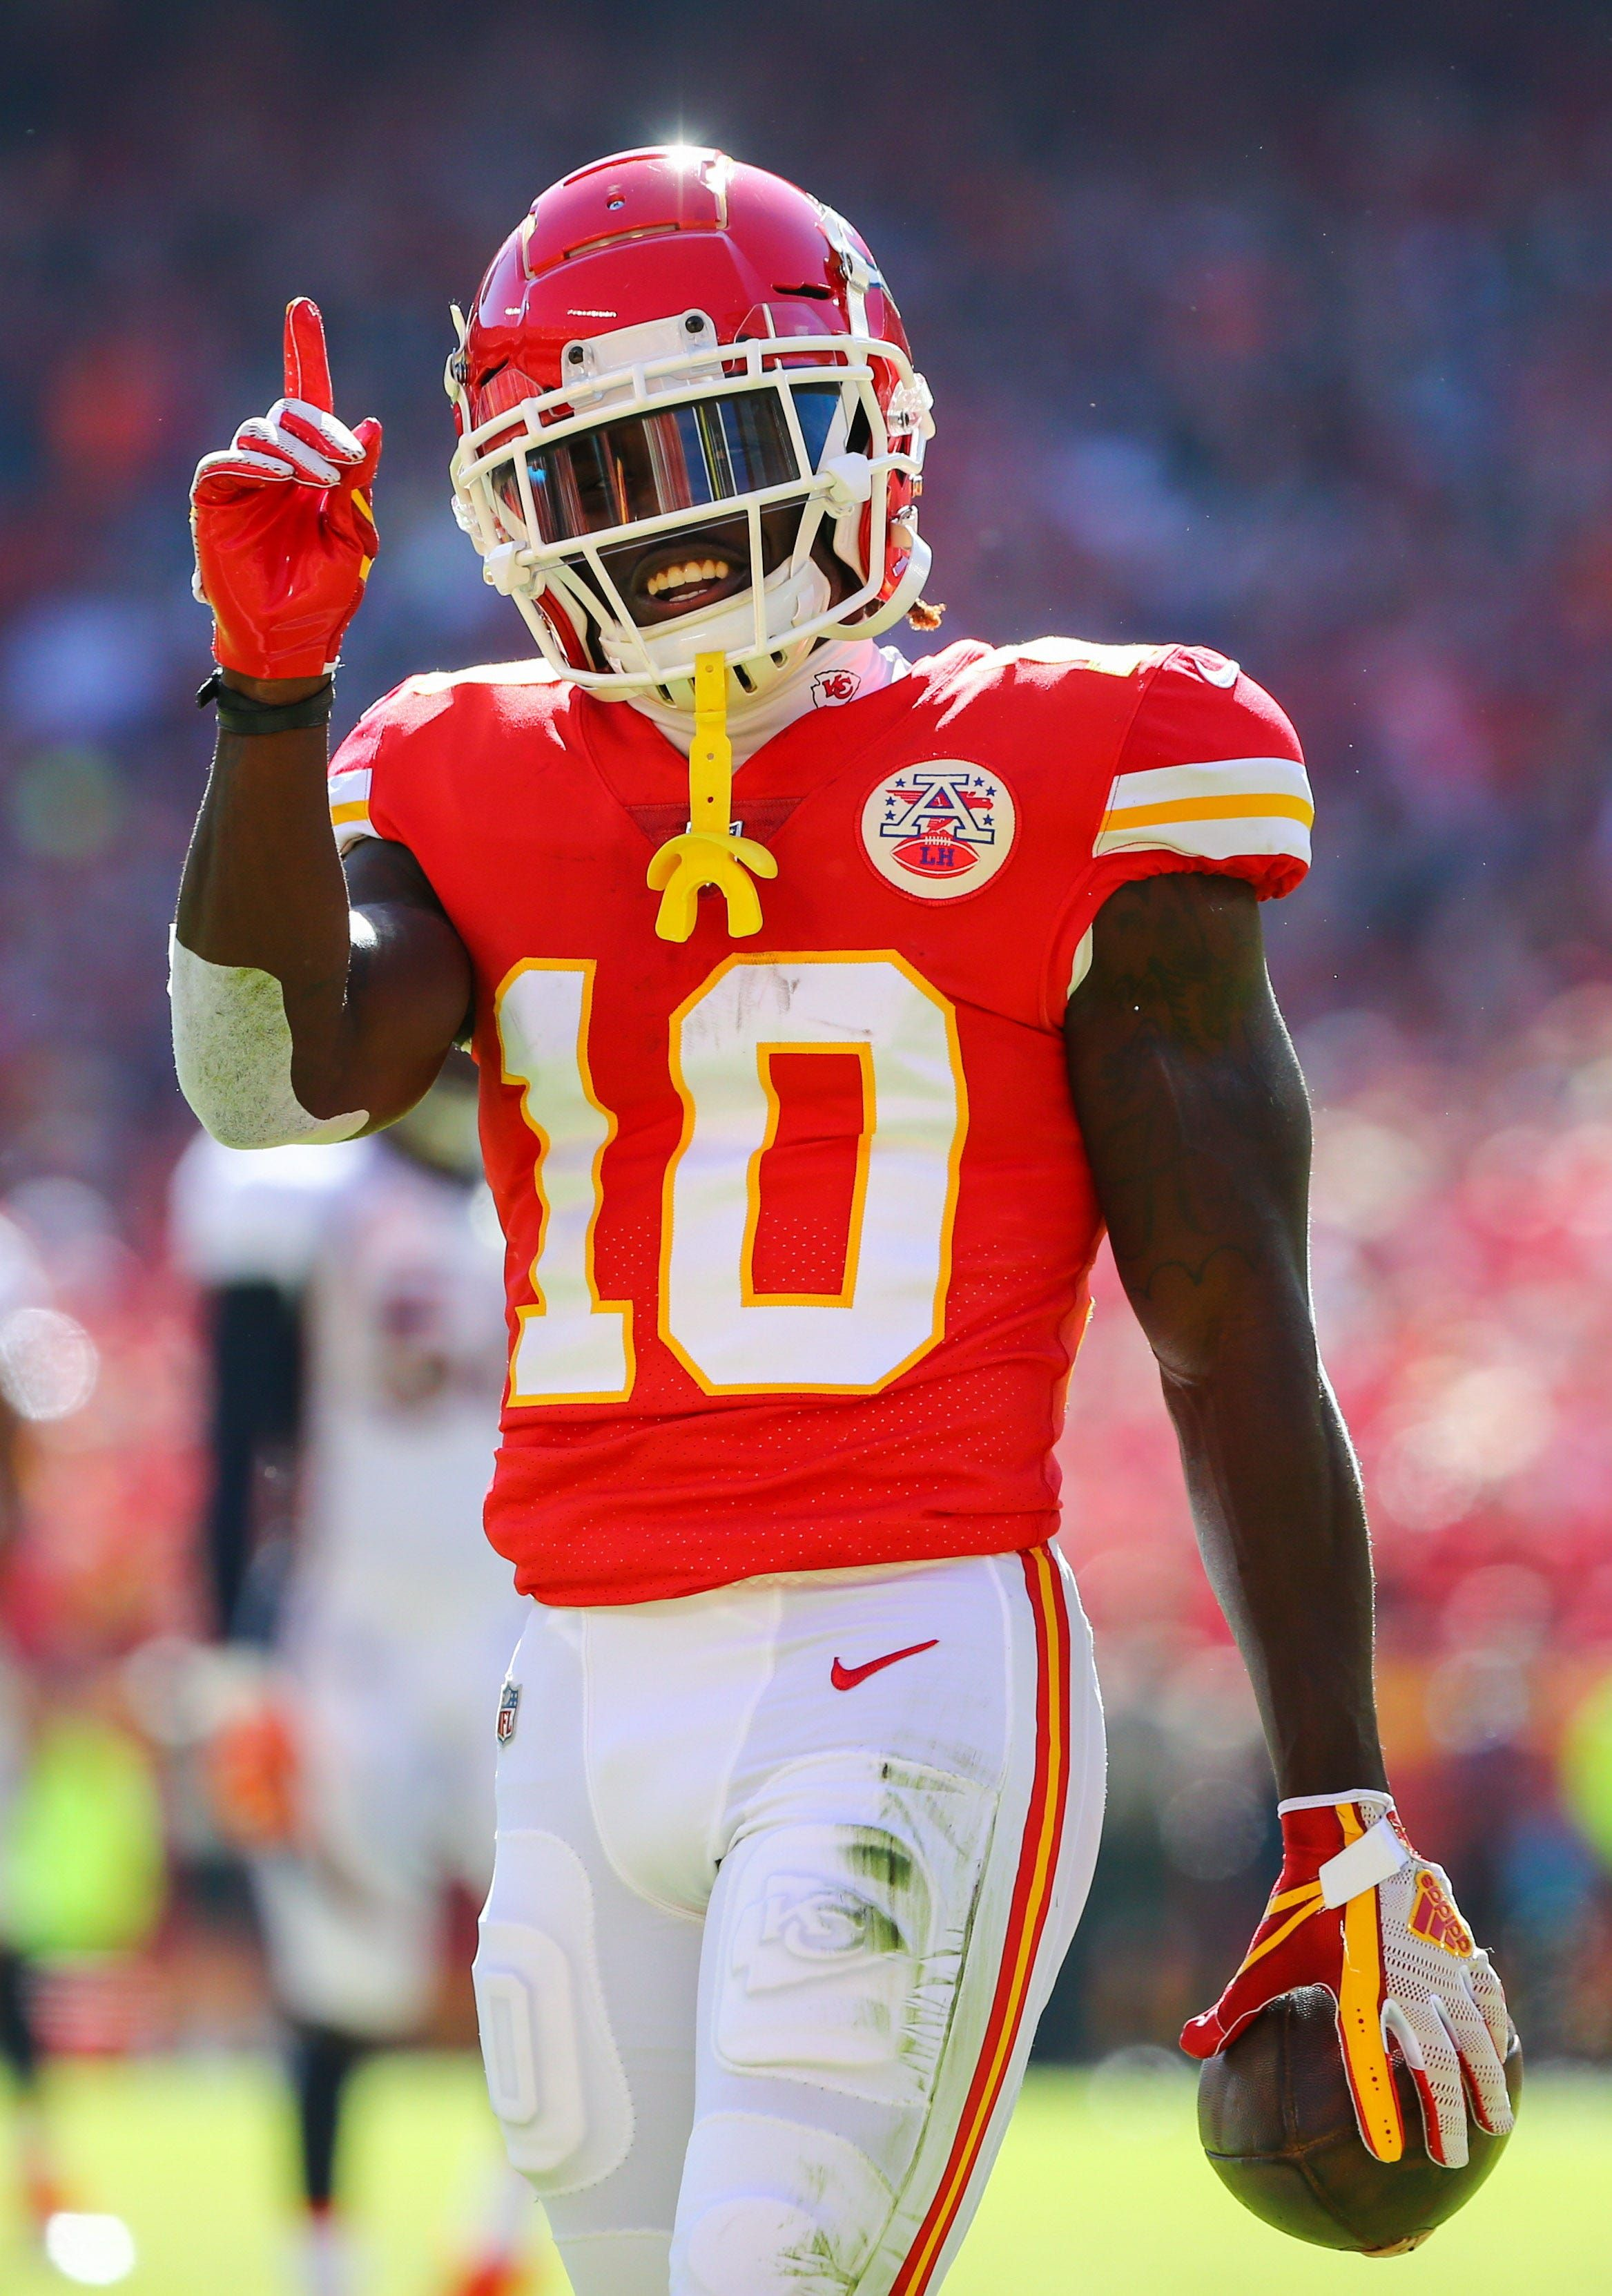 Nfl S Game Of The Year Breaking Down Chiefs Vs Rams On Monday Nfl Football Players Kc Chiefs Football Nfl